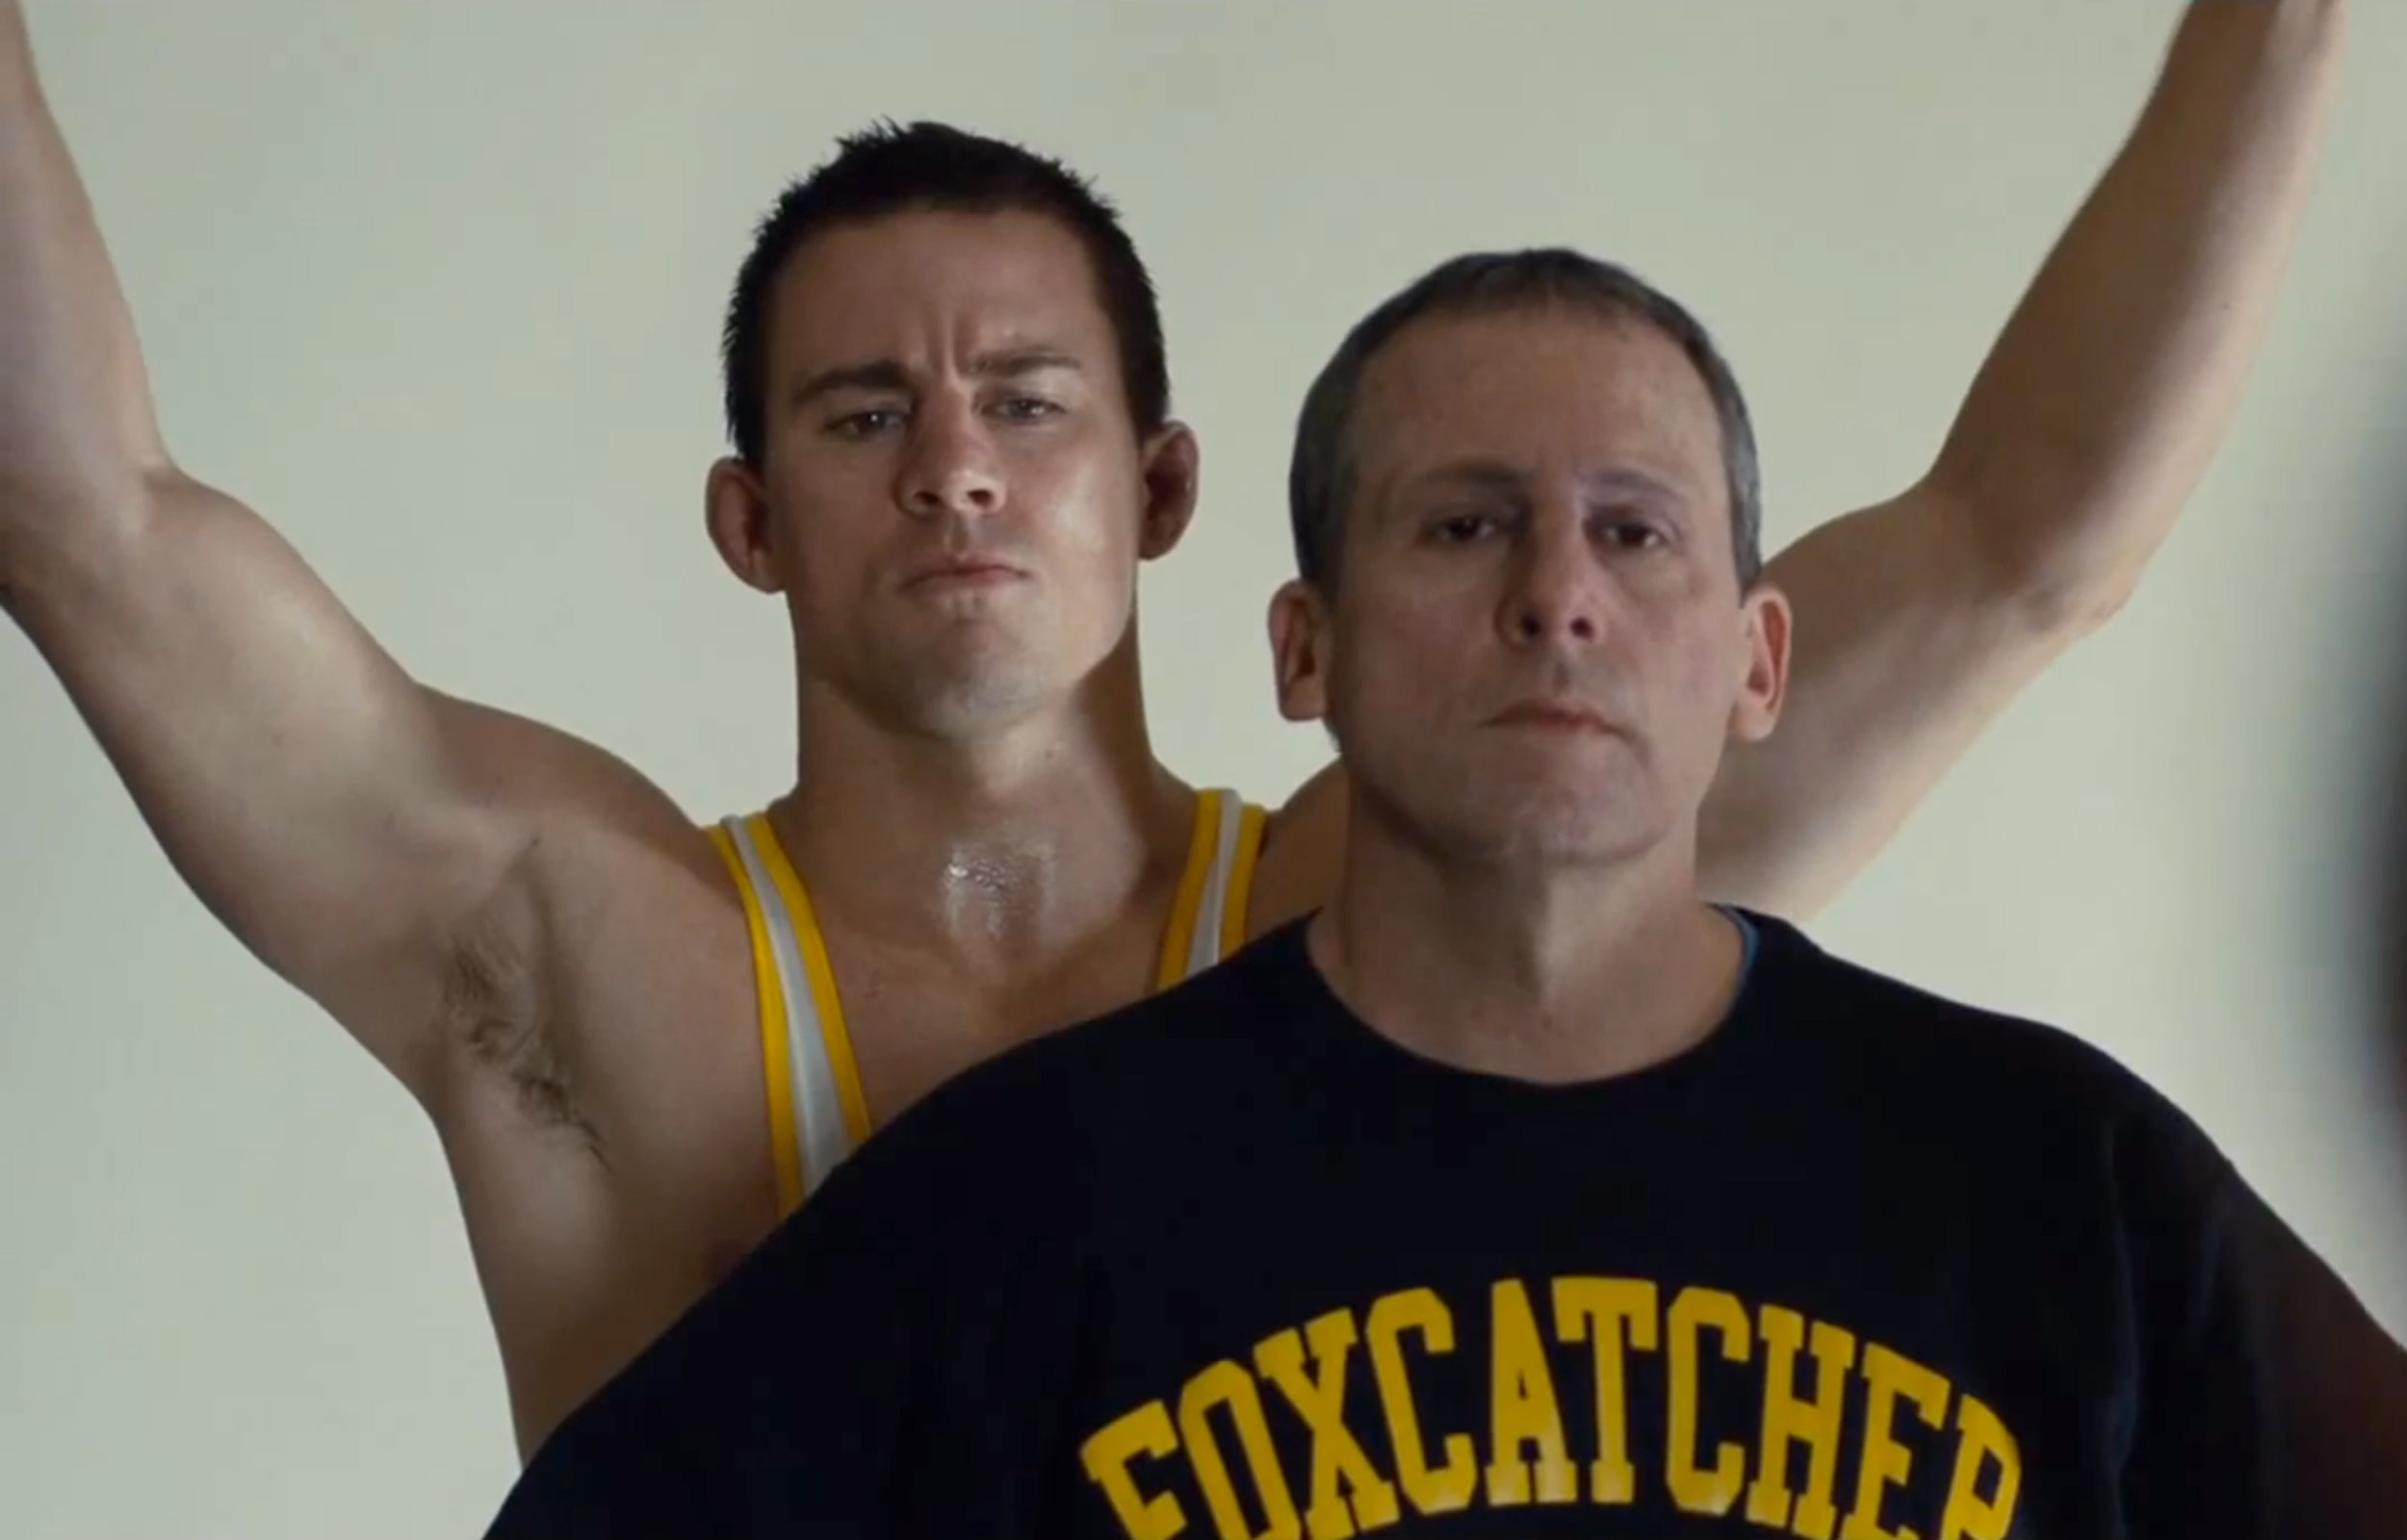 http://cinema-scope.com/wp-content/uploads/2014/11/foxcatcher-channing-tatum-steve-carell-1.jpg